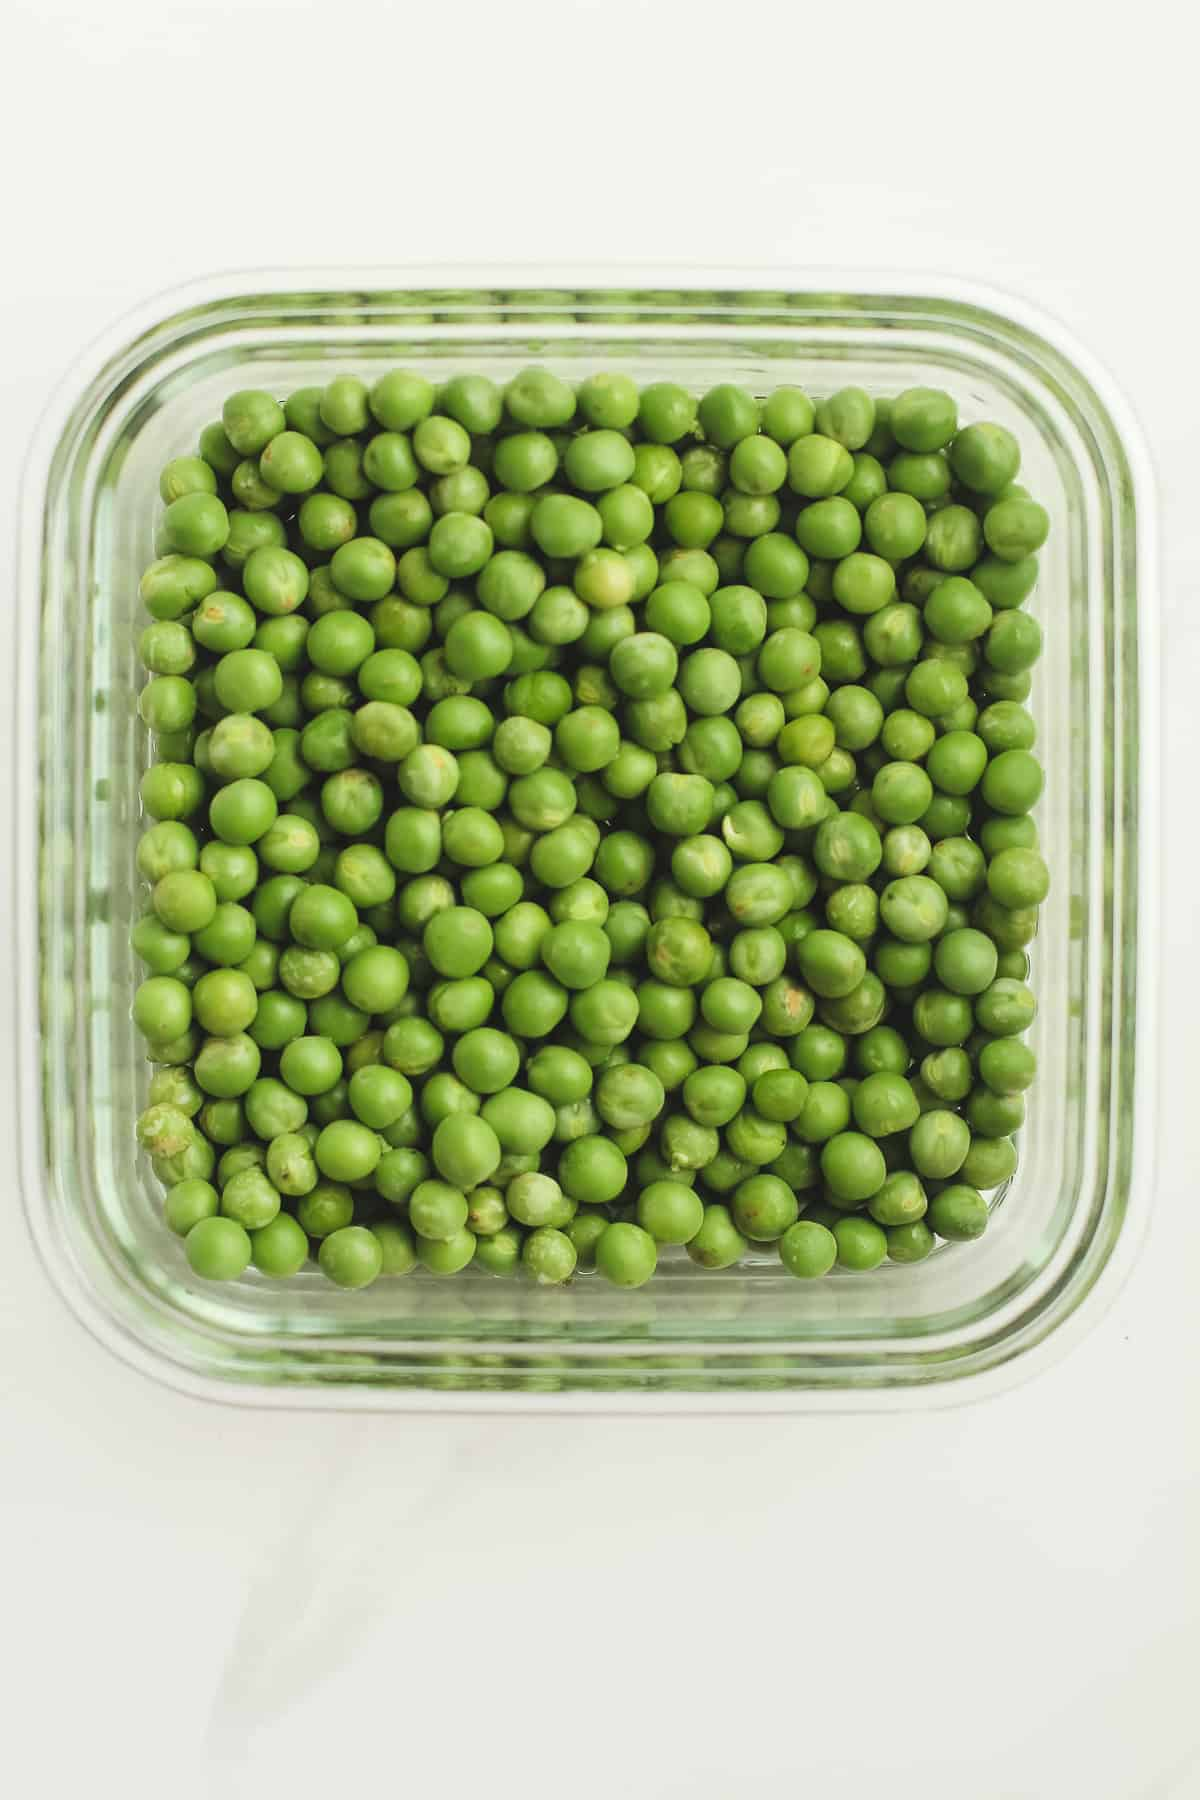 A bowl of the spring peas.